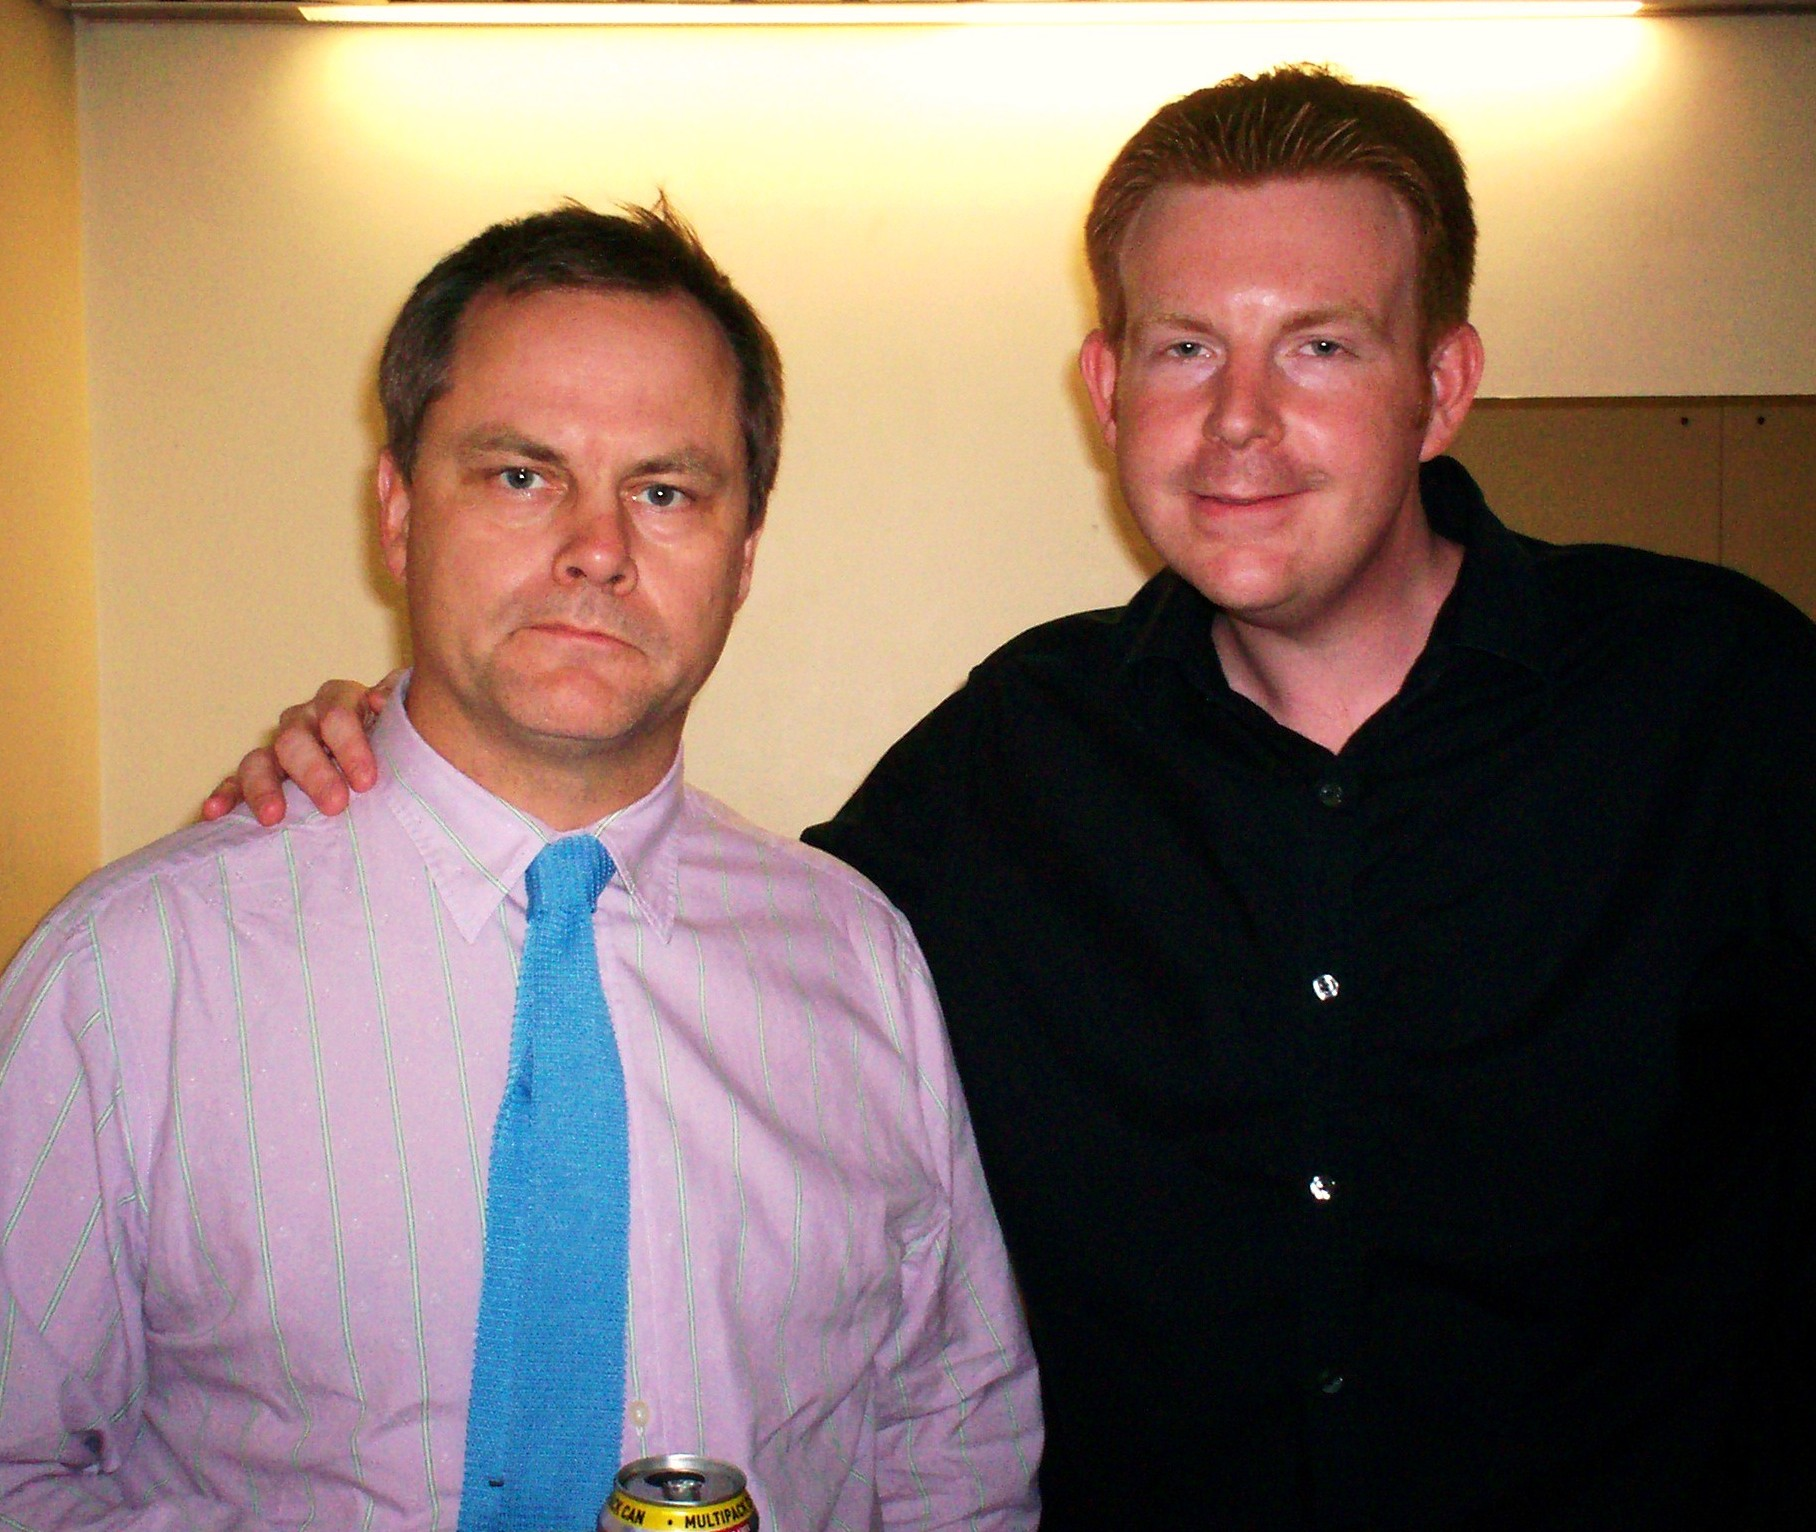 Enjoy Celebrity Radio's Jack Dee Life Story Interview…. Jack Dee is an English stand-up comedian, actor and writer known for his sarcastic, witty, and deadpan […]